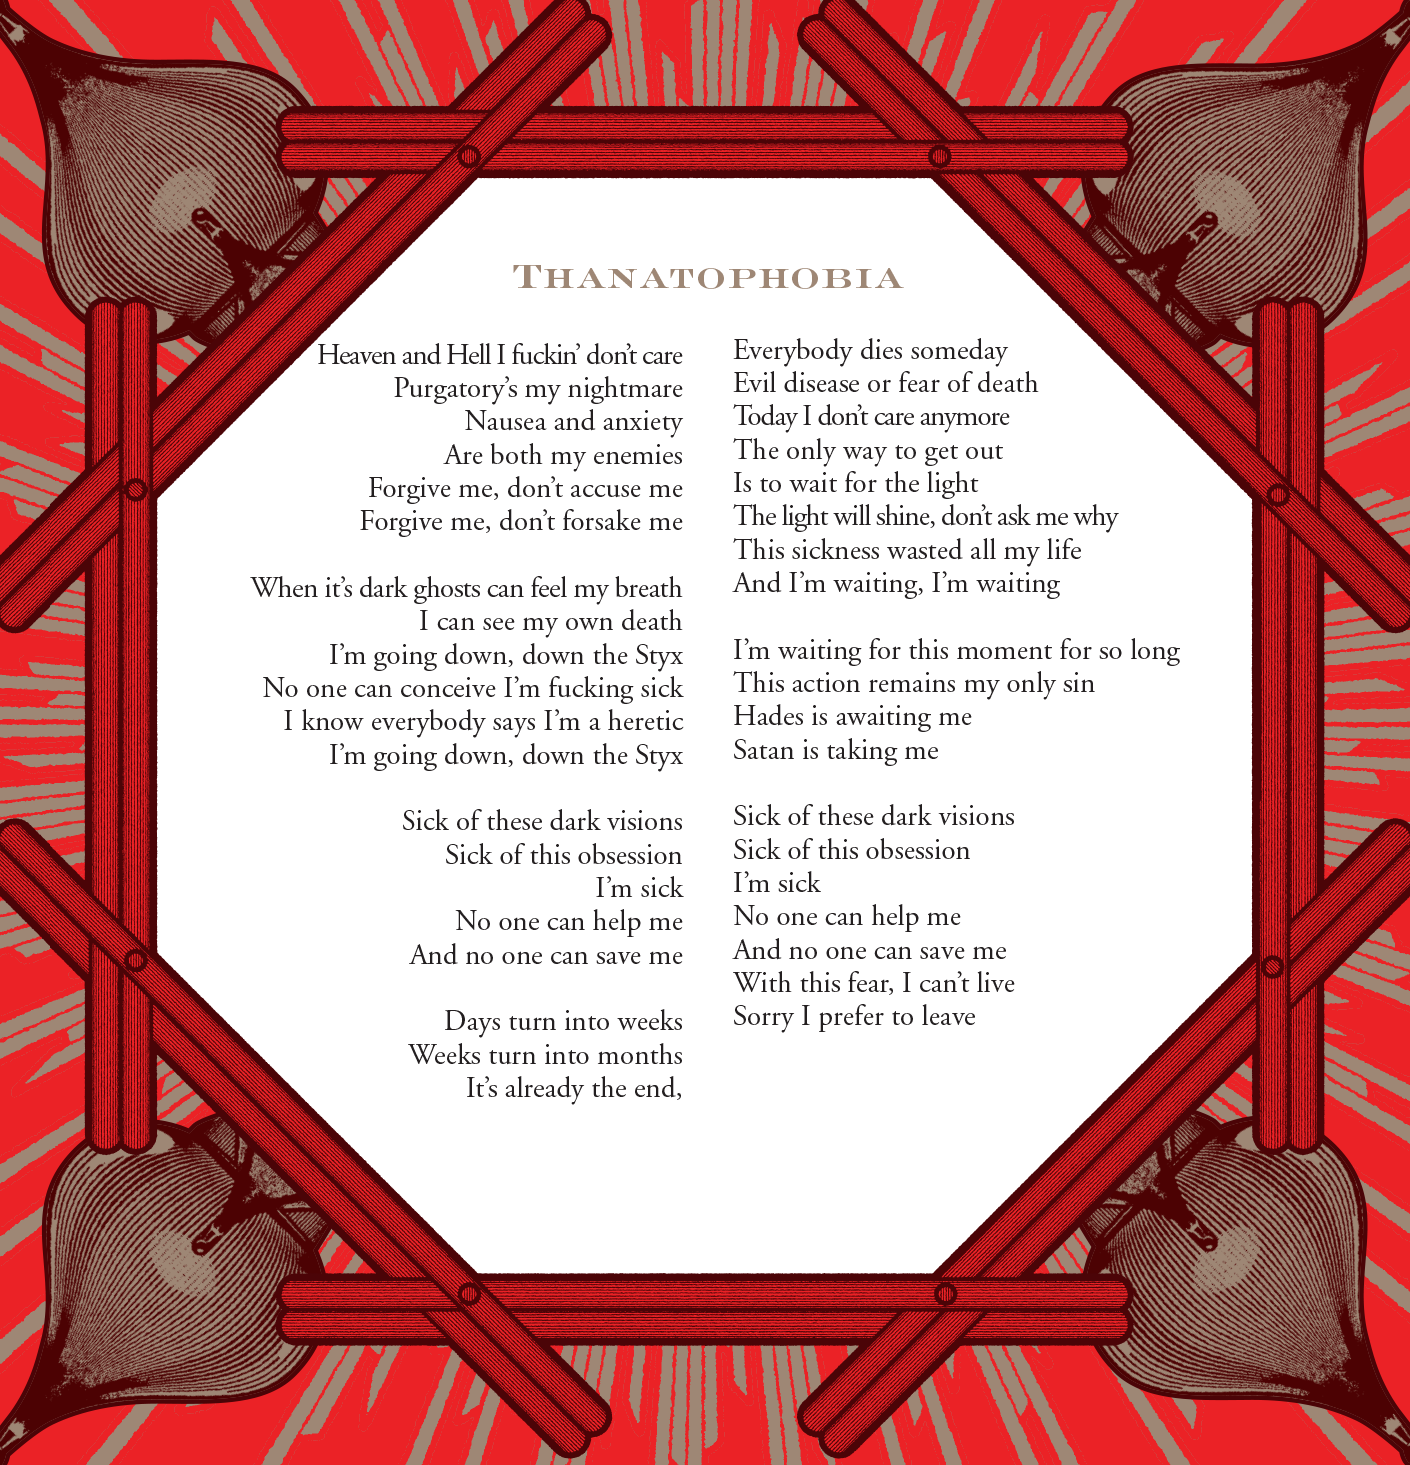 lyrics-1-thanatophobia